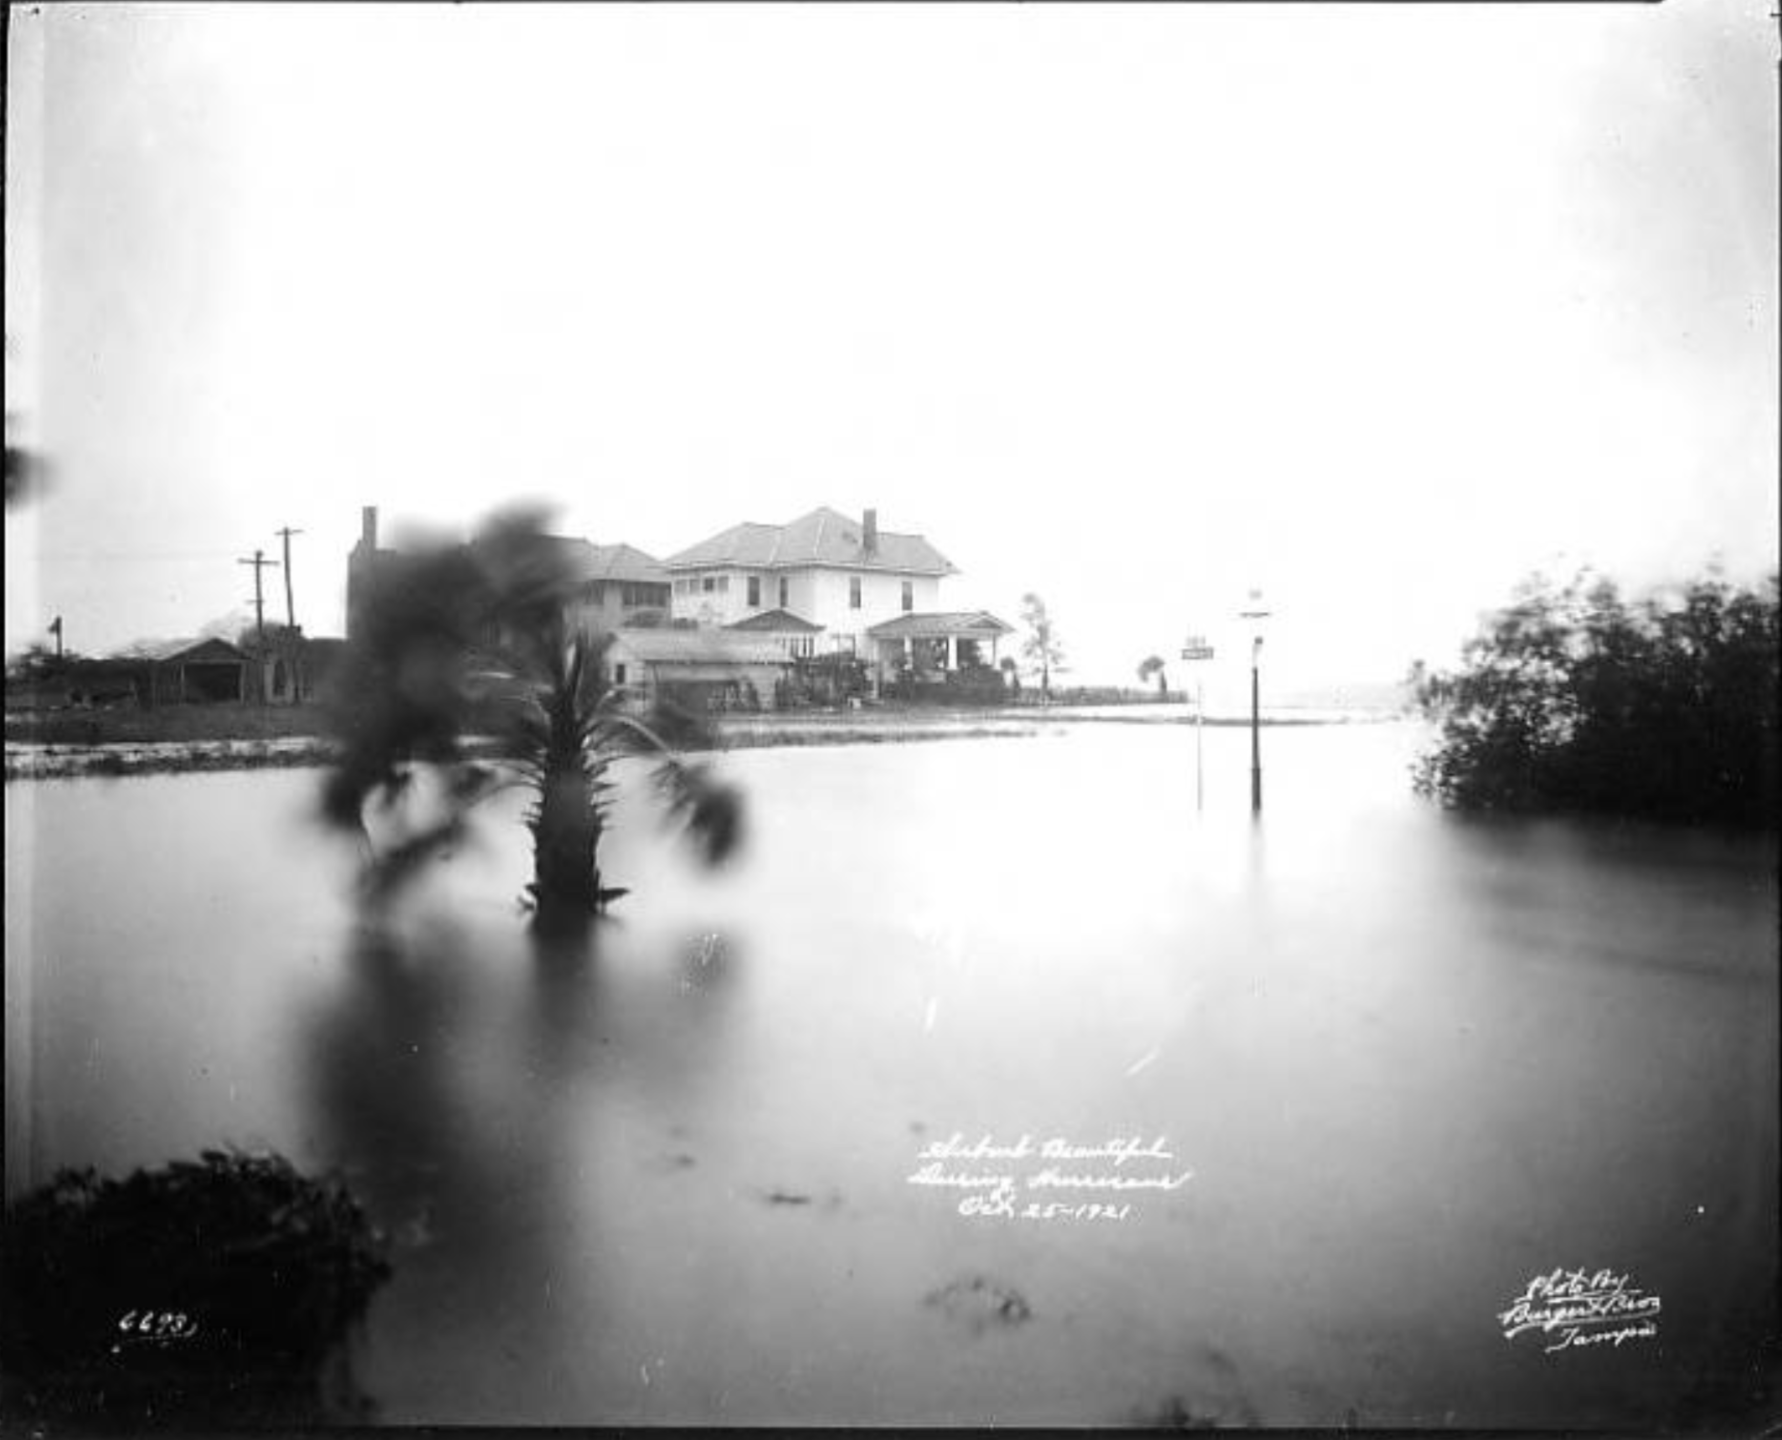 View of flooding to New Suburb Beautiful after hurricane Tampa, Fla..png